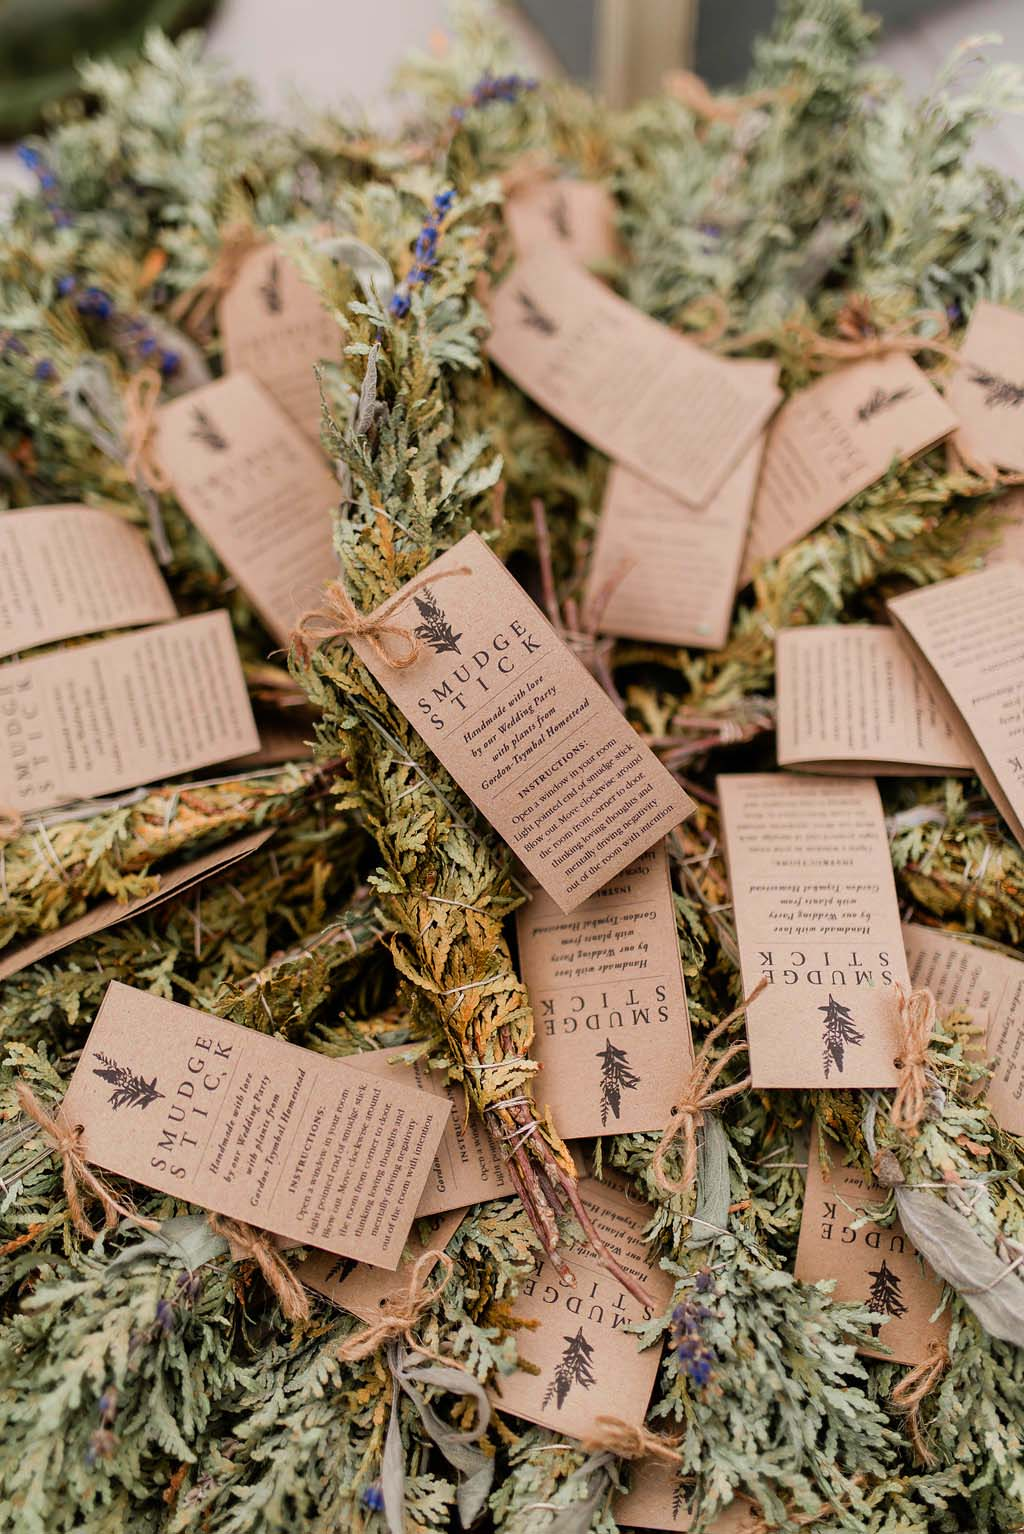 Make Your Own Smudge Stick Wedding Favours